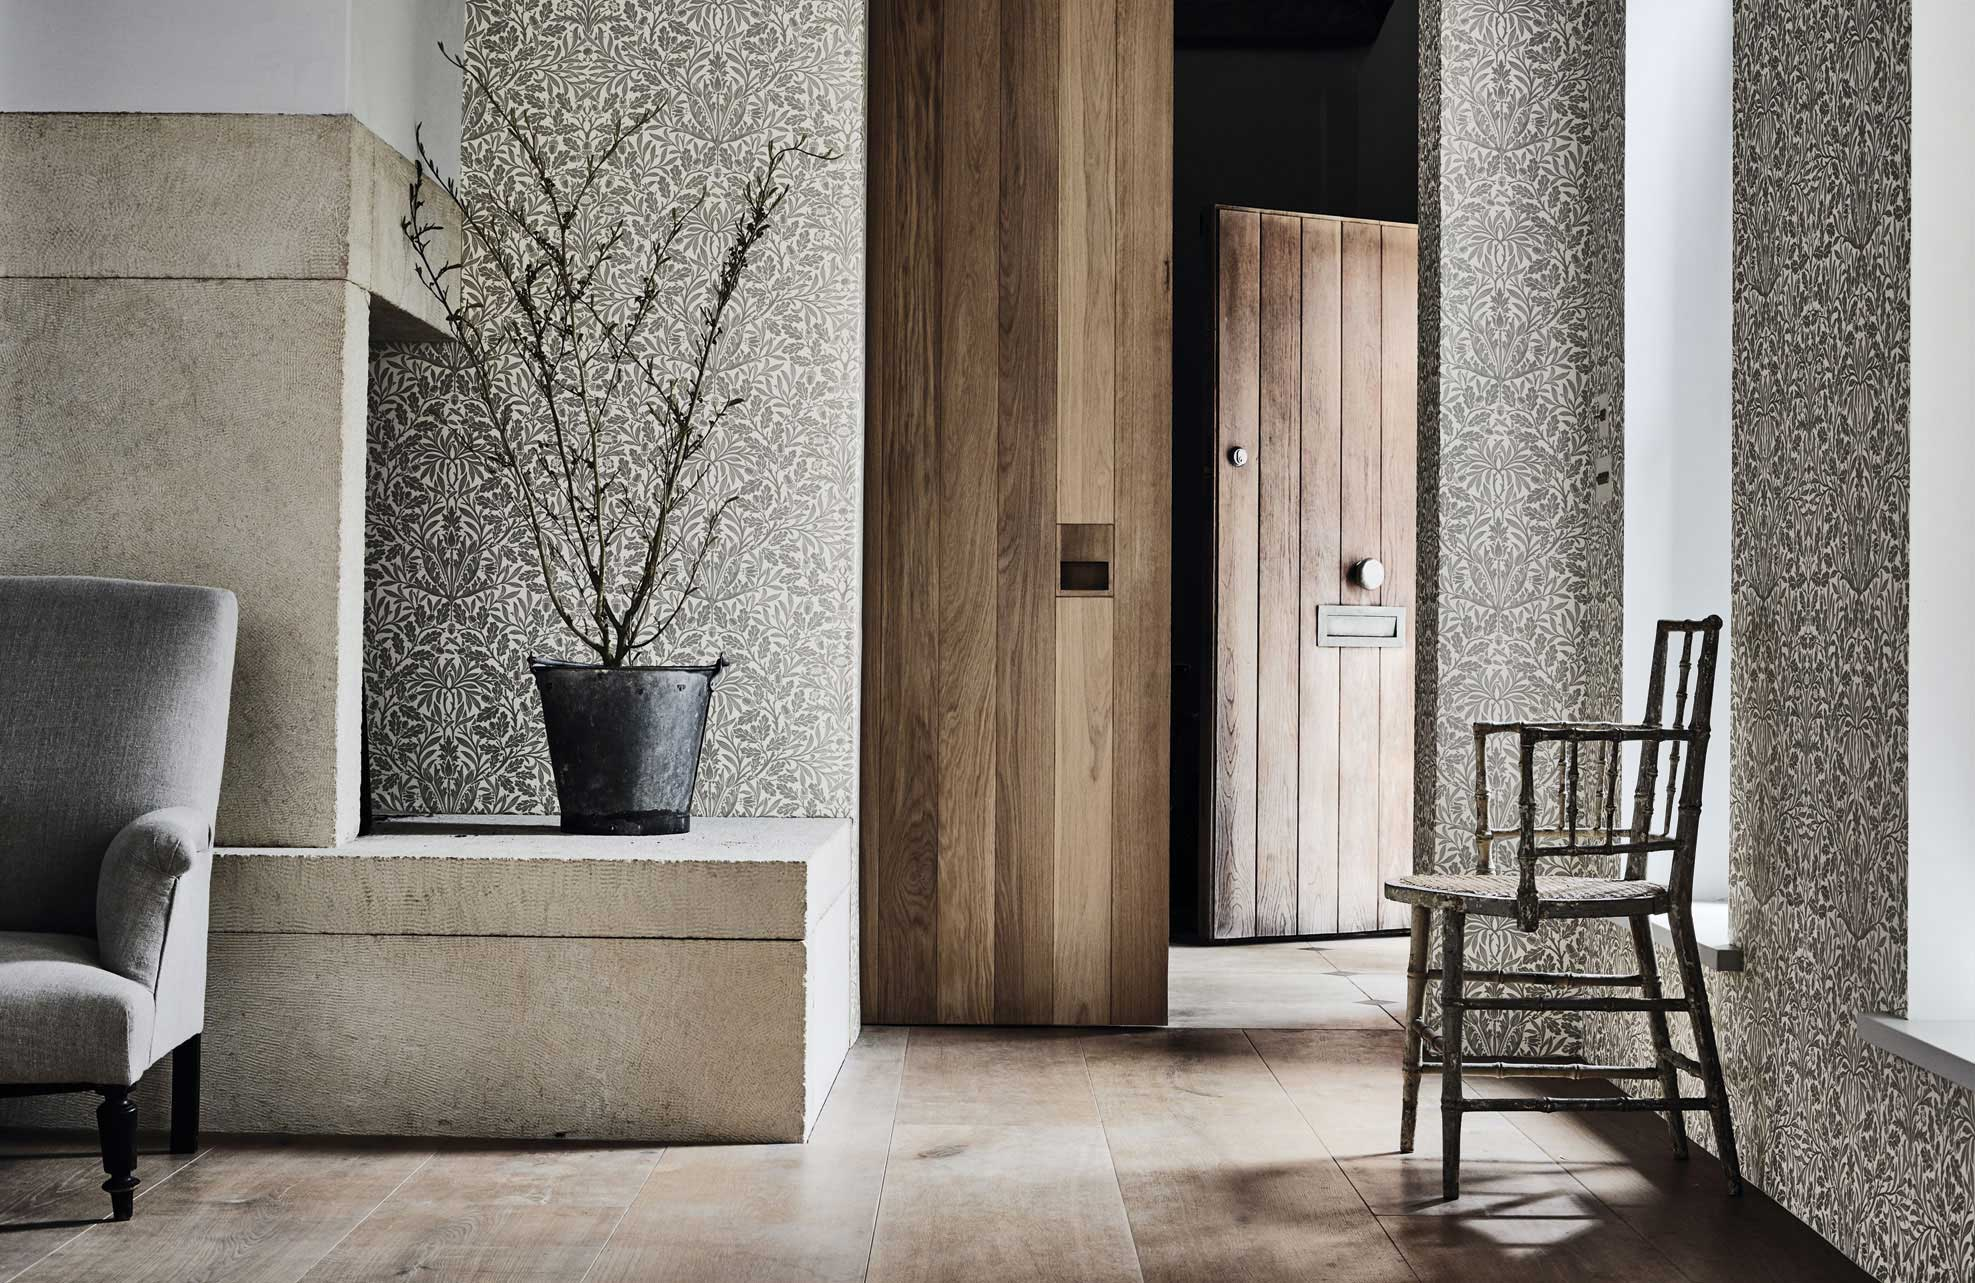 morris-pure-wallpaper-acorn-detail-living-space-plant-grey-metallic-white-natural